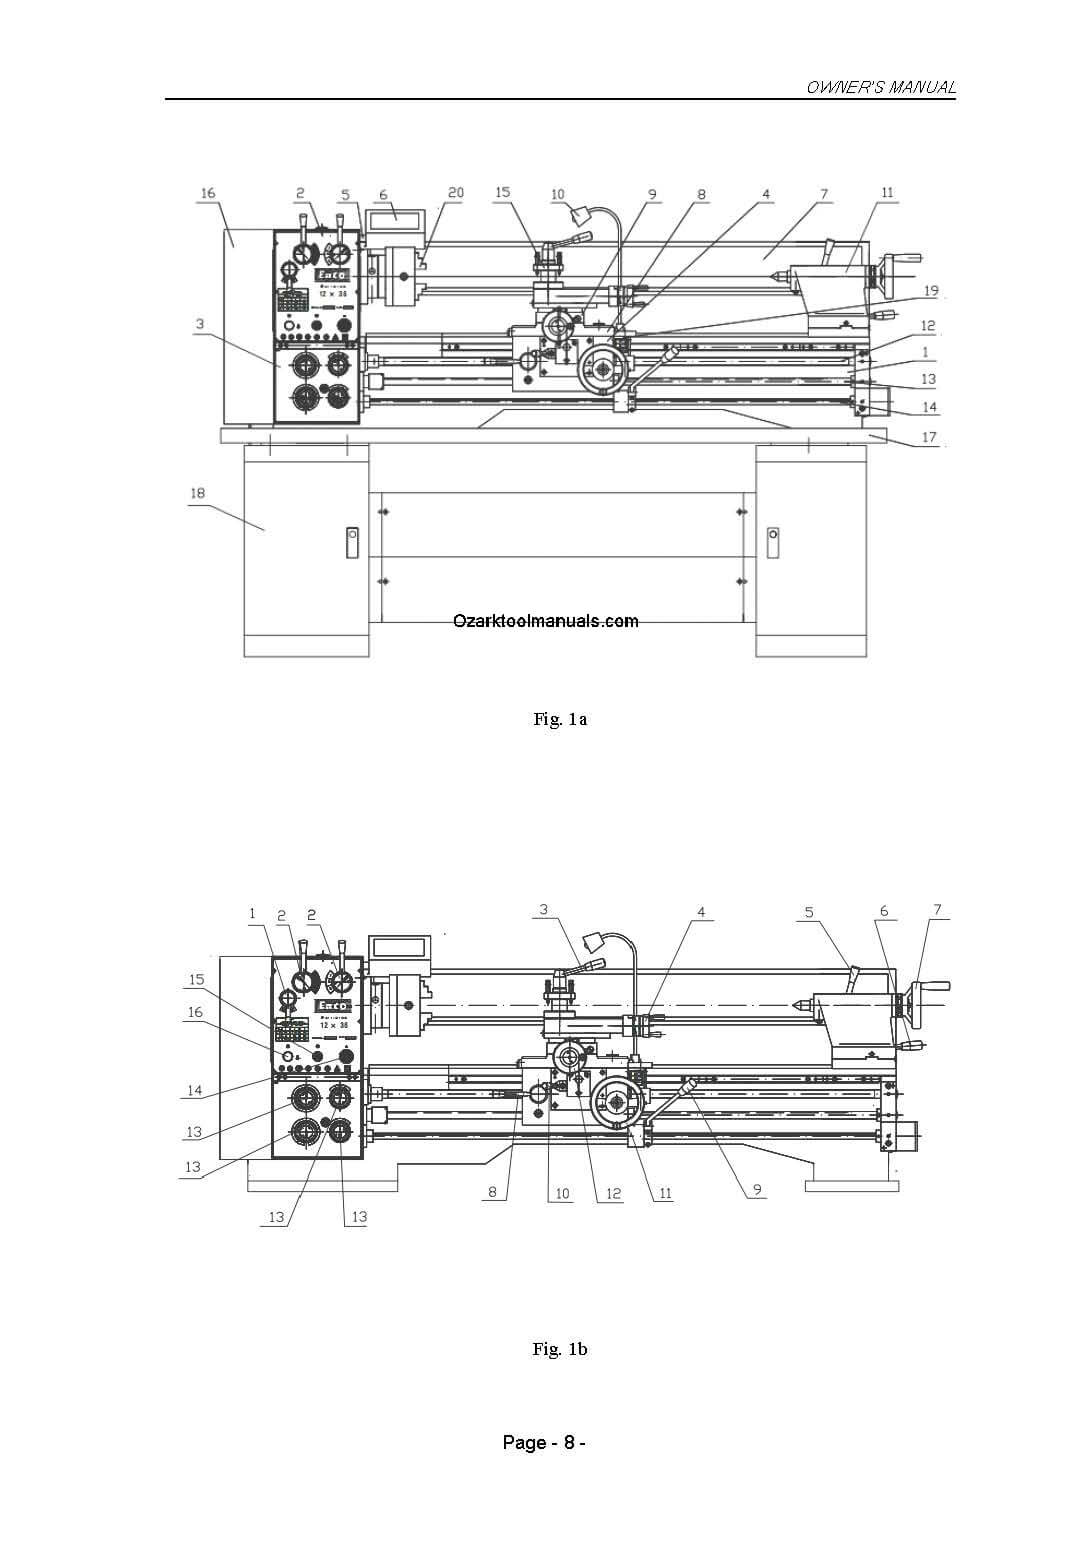 Jet Lathe Wiring Diagram Schematic Diagrams Enco Asian 1236 1340 Metal Lathes 411 0105 0106 Instructions Single Phase Ac Motor